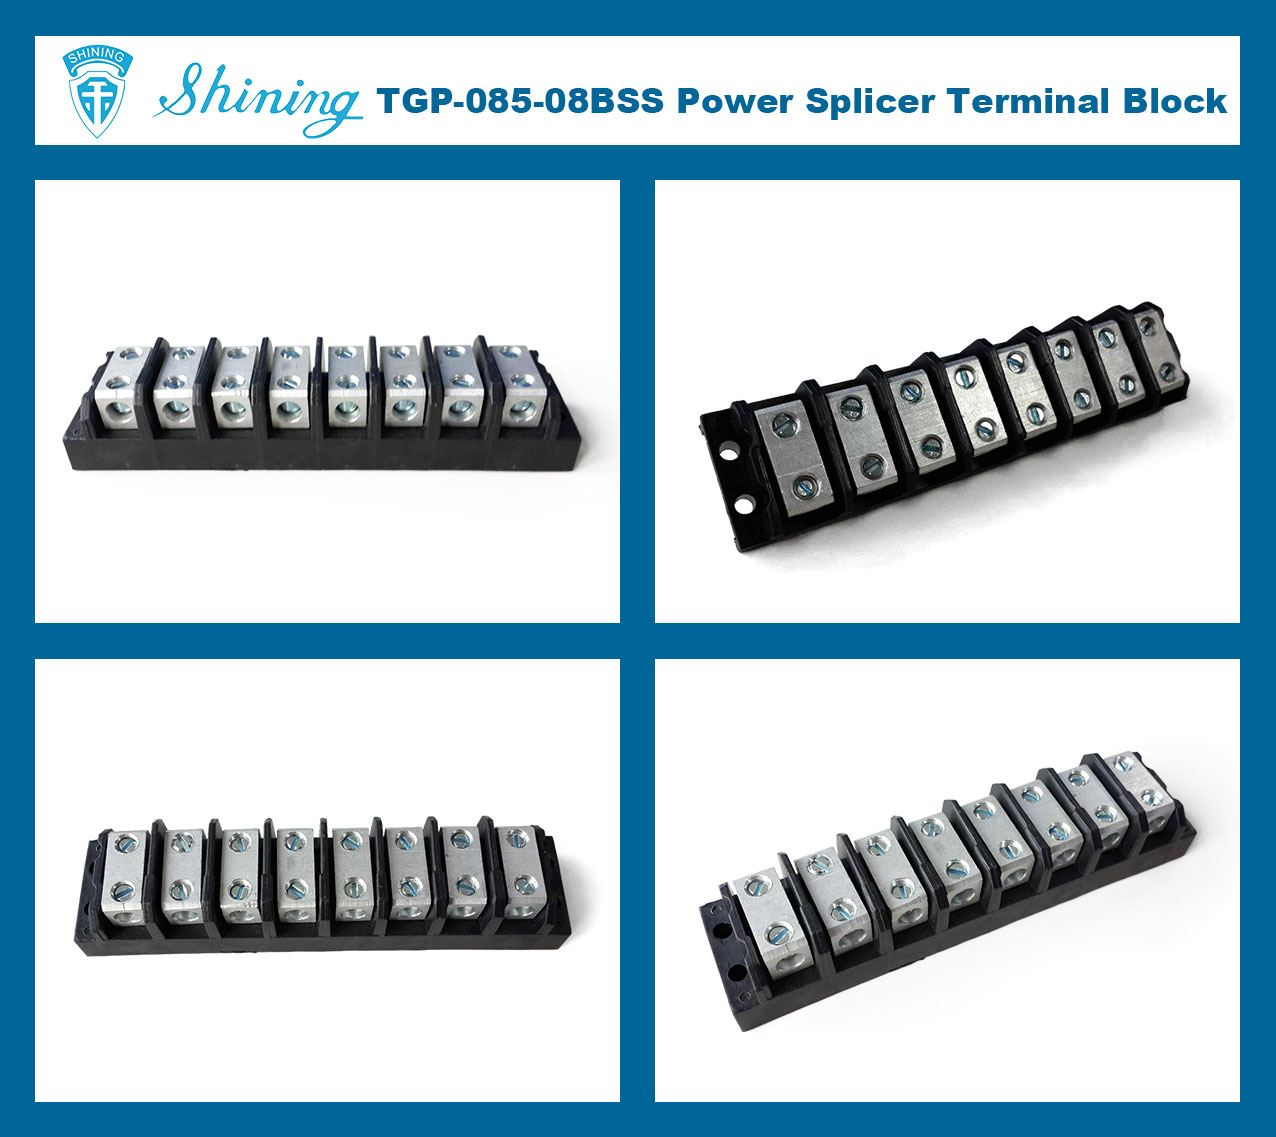 TGP-085-08BSS 600V 85A 8 Way Power Splicer Terminal Block